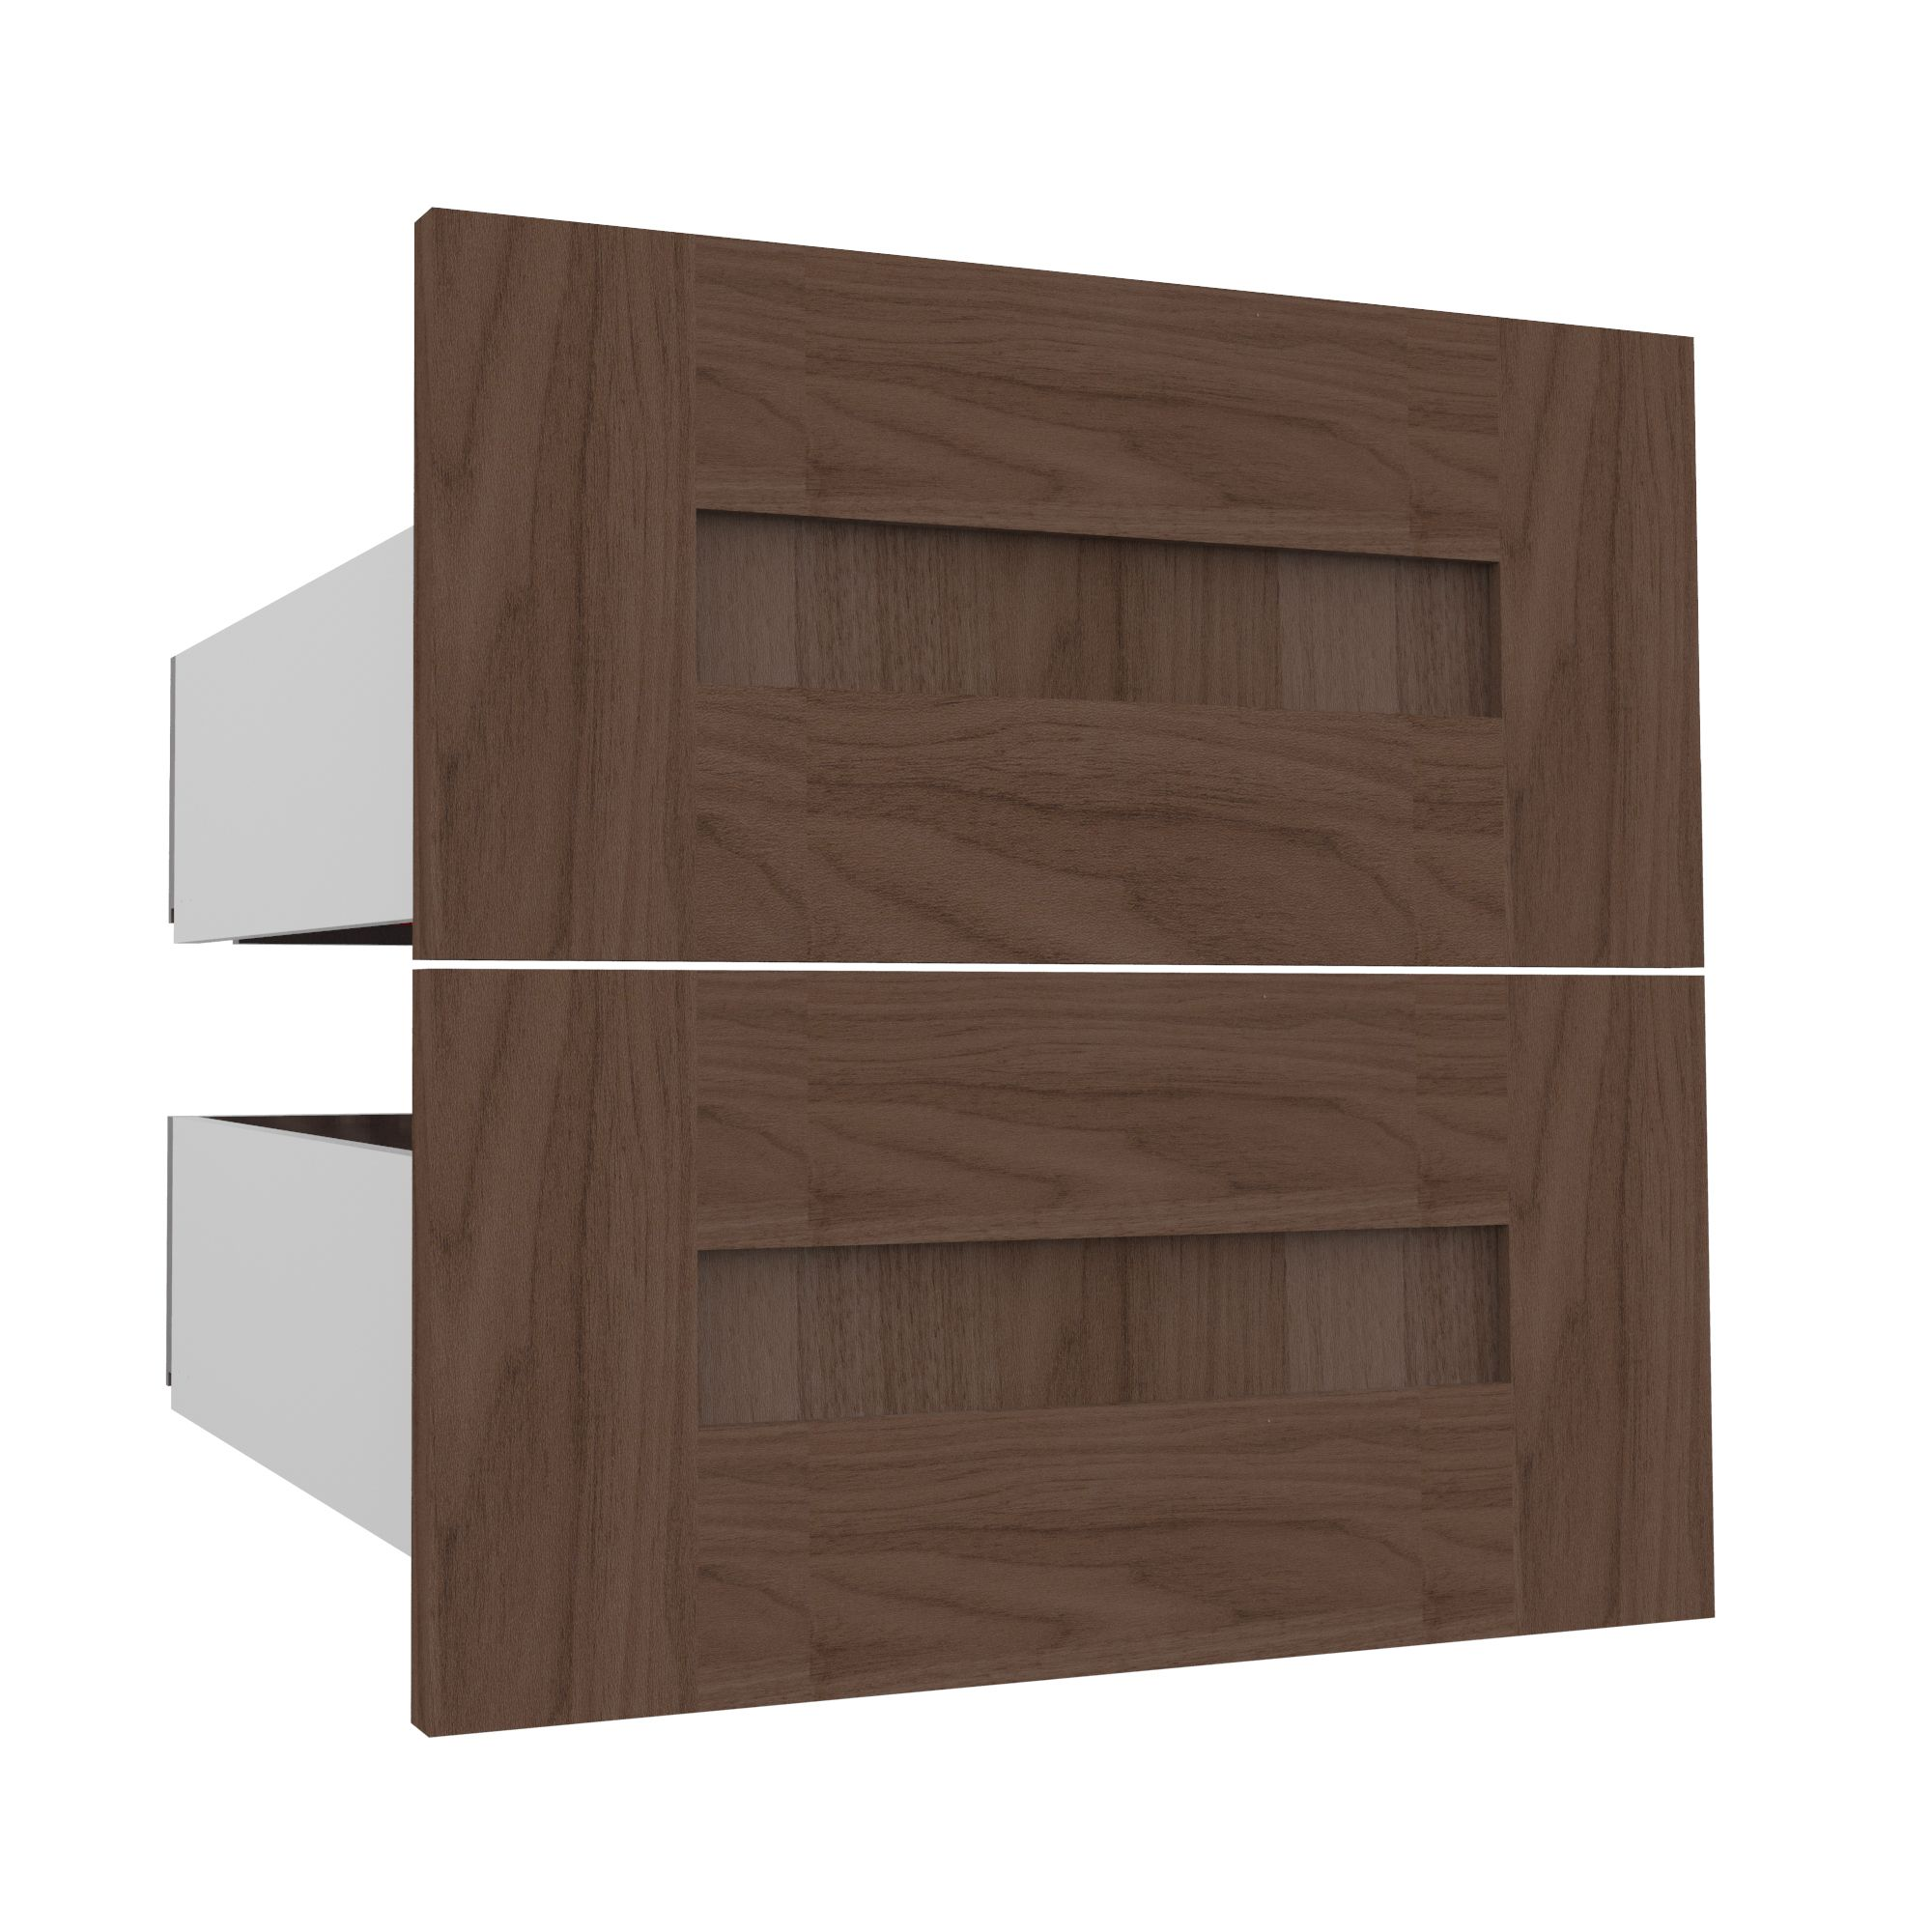 Darwin Modular Natural & Walnut Effect External Drawers (h)237mm (w)500mm (d)566mm